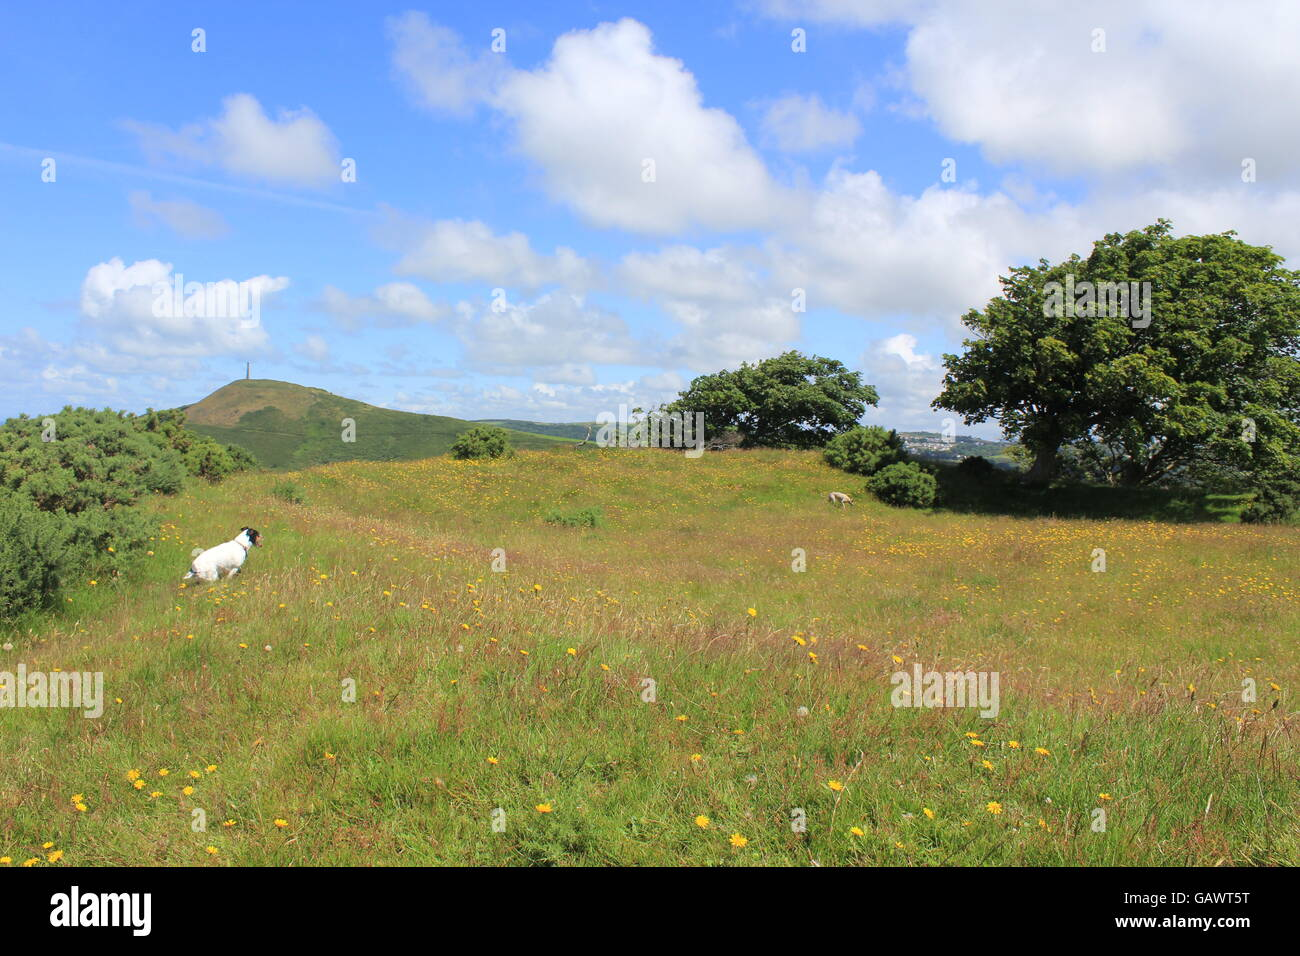 Aberystwyth Ceredigion Wales UK Weather 5th july 2016 A great day to visit historical sites & the site of the original Stock Photo